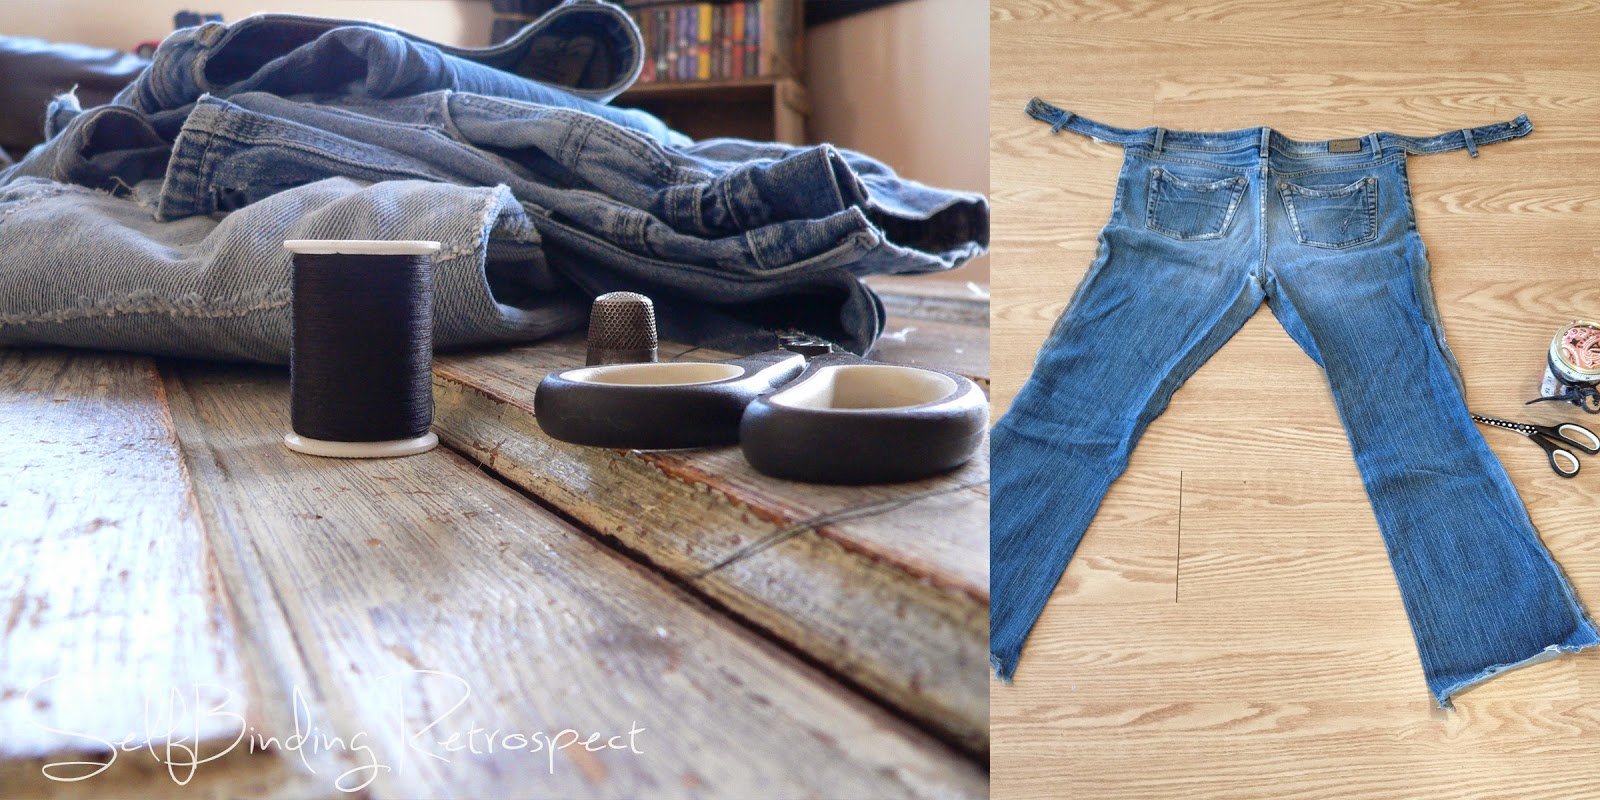 Make a backseat organizer out of old jeans